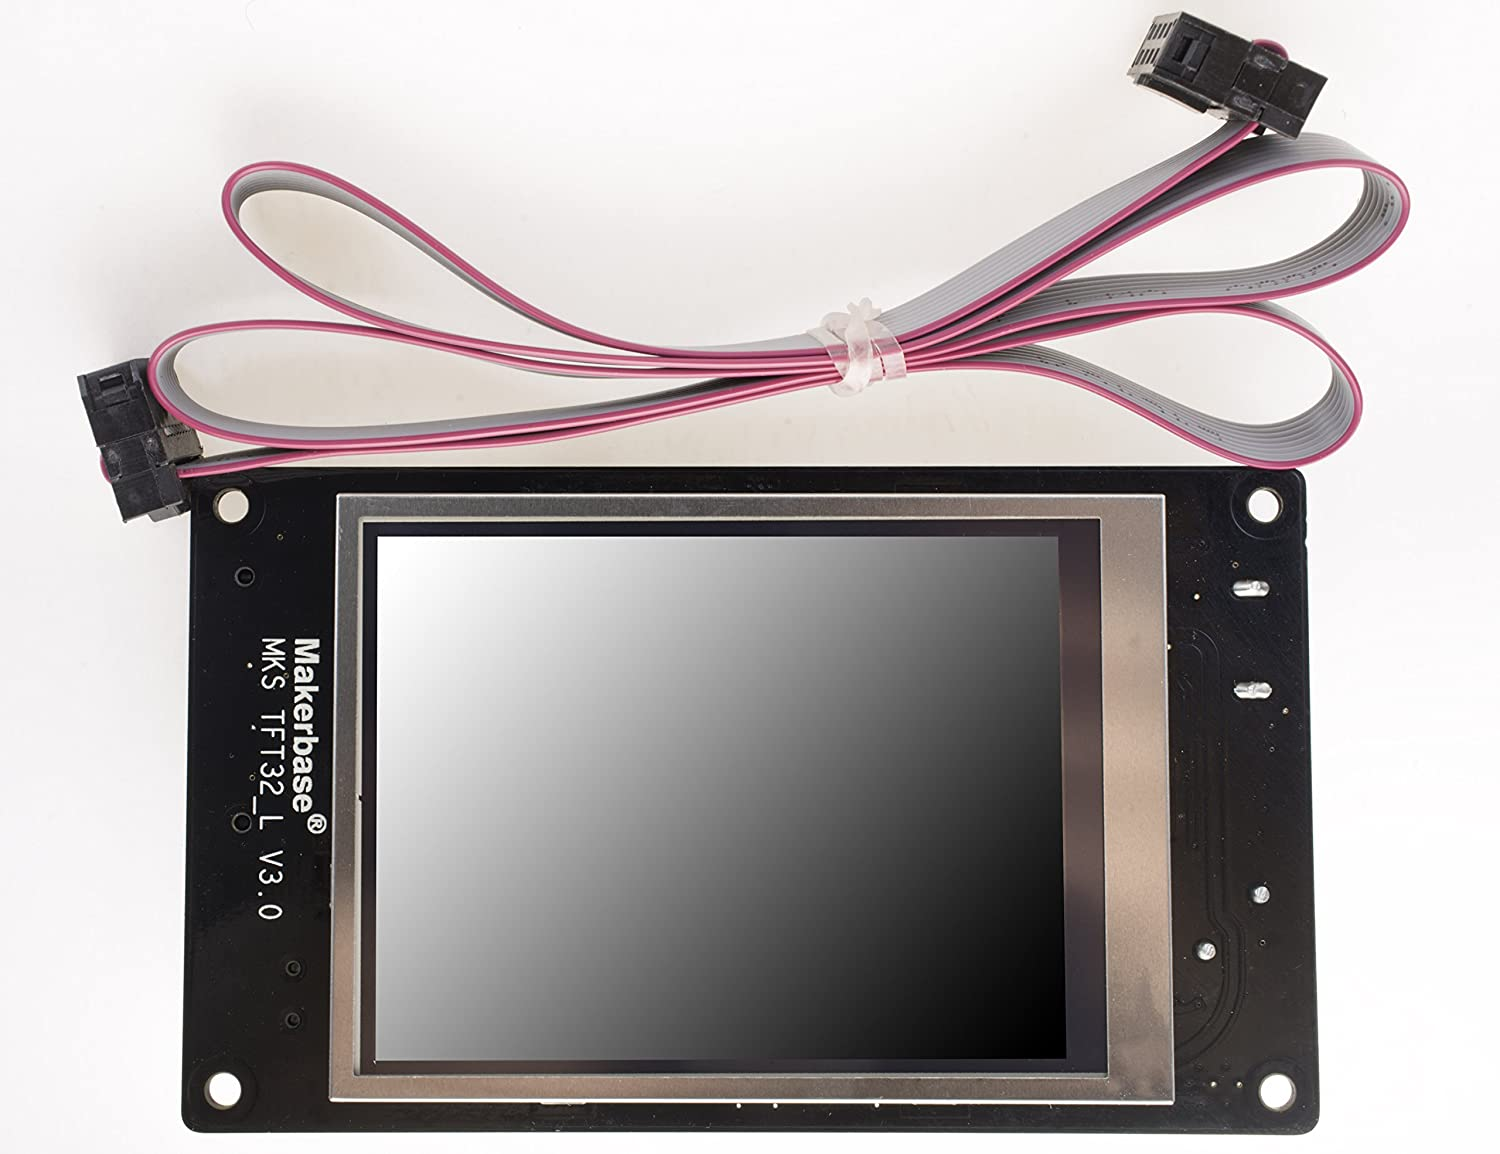 MKS TFT32 V3.0 Smart Controller Display 3.2 Zoll Inch RepRap Touchscreen Screen Der bildschirm Monitor LCD Display Support WIFI/BT For 3D Printer 3D Drucker With USB support APP/BT/editing/local language Makerbase